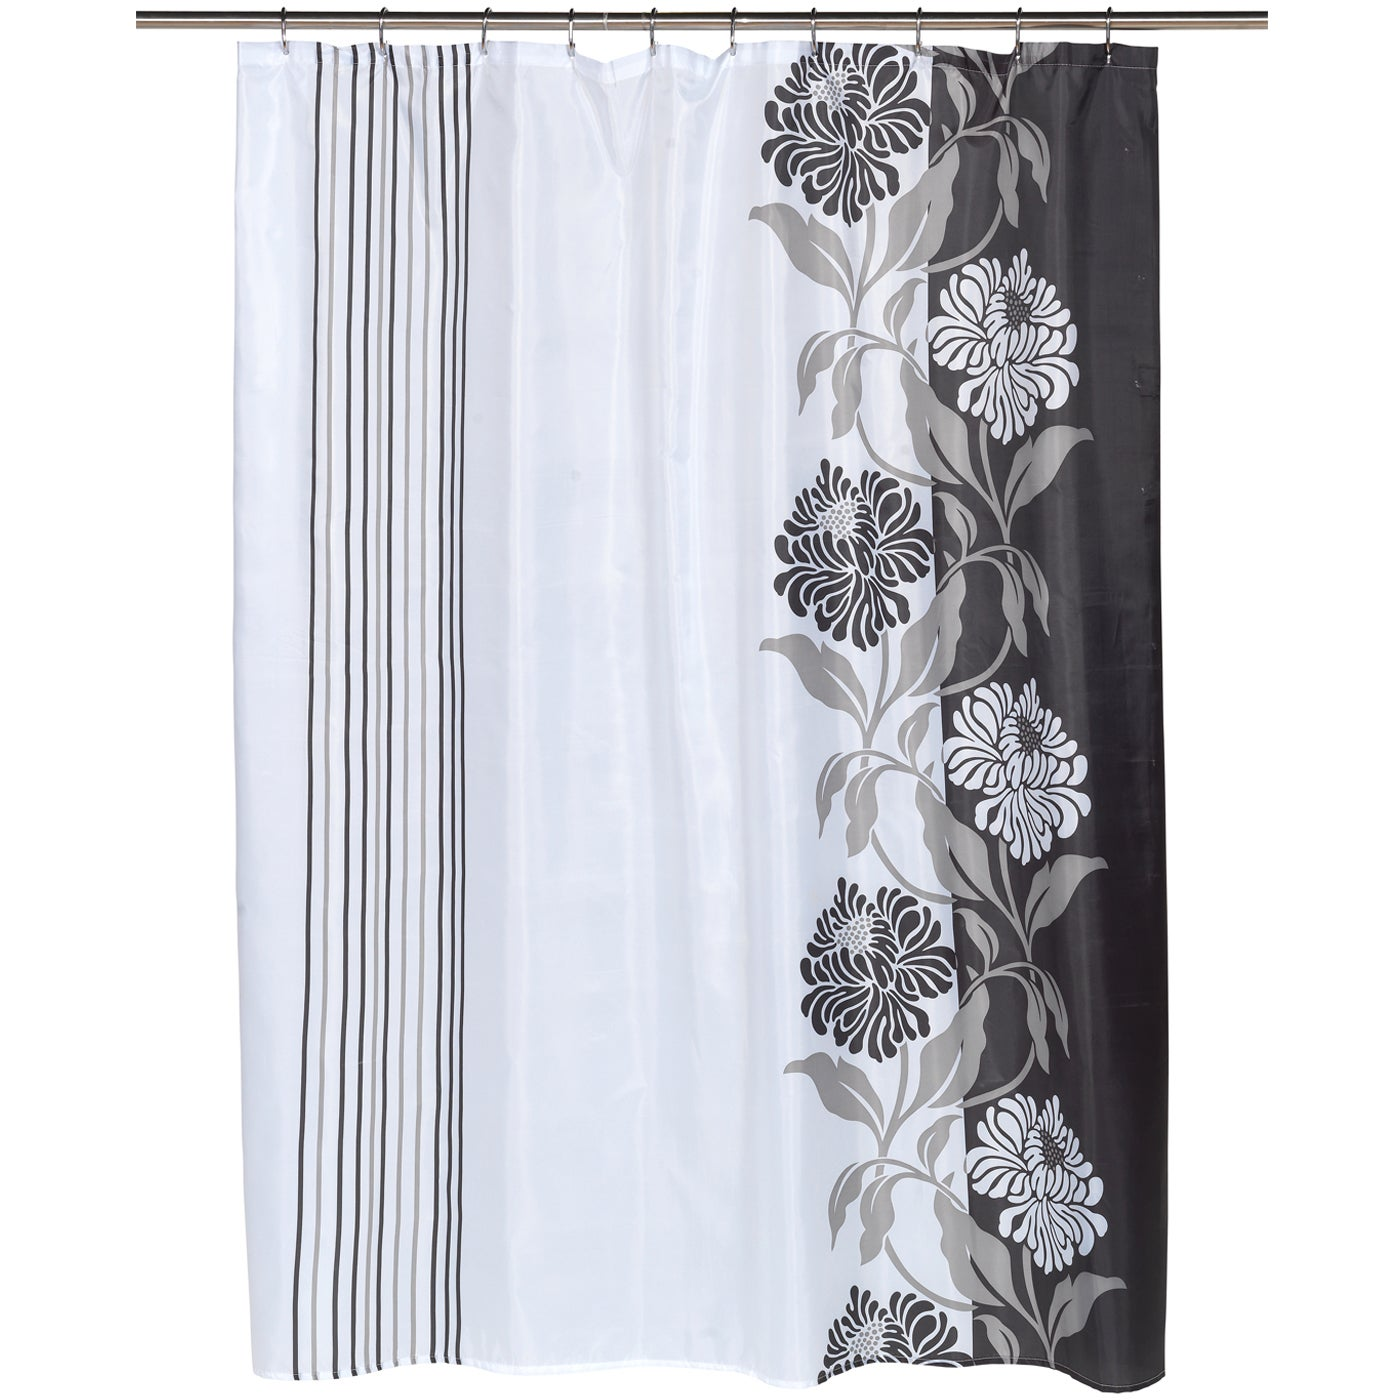 Black And White Flower Shower Curtain. Beautiful Black and White Flower Motif Extra Long Fabric Shower Curtain  70 x 84 Free Shipping On Orders Over 45 Overstock com 18563082